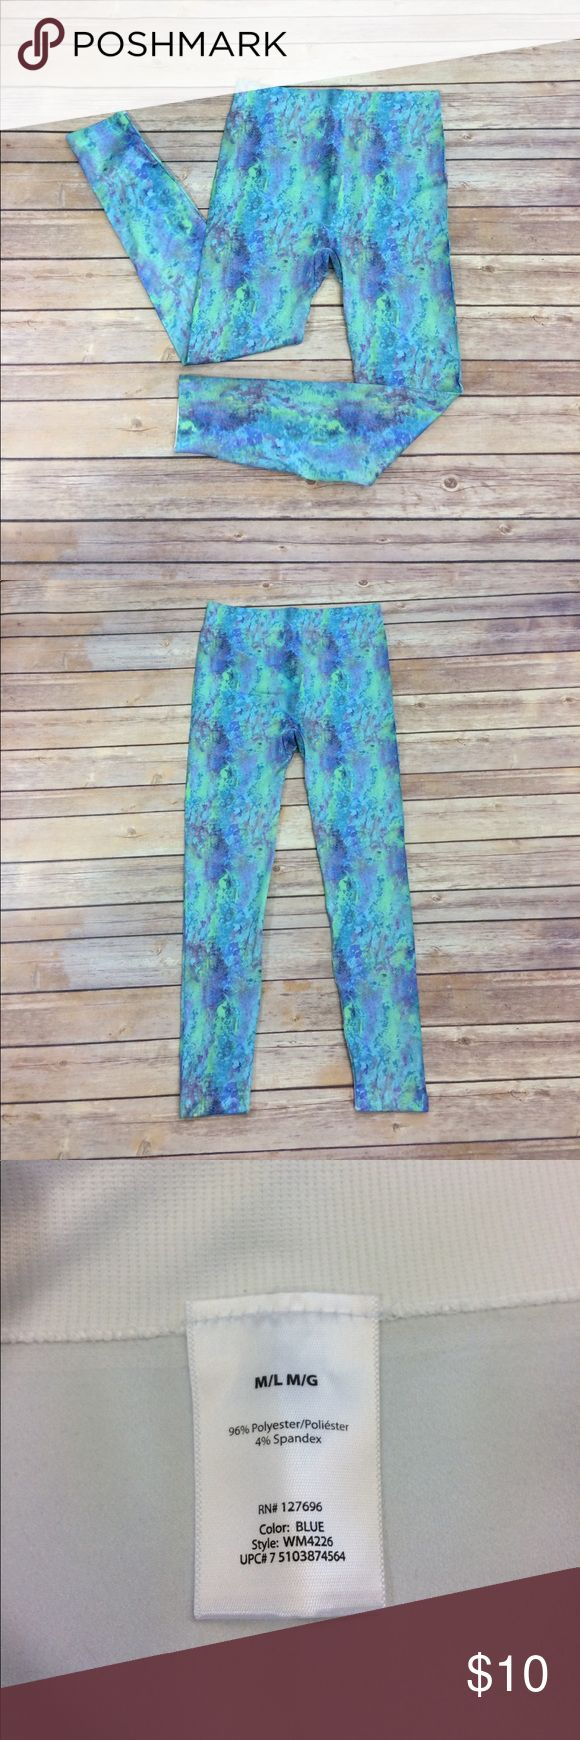 "Water Color Leggings—Great for Yoga Adorable water color leggings. Super stretchy. Material has a nice, silky feel to it. Soft elastic waistband that doesn't cut into skin. W 26""; L 34""; I 24.5"". The length stretches enough to fit longer inseam up to 31"". Maybe more. Worn once. Pants Leggings"